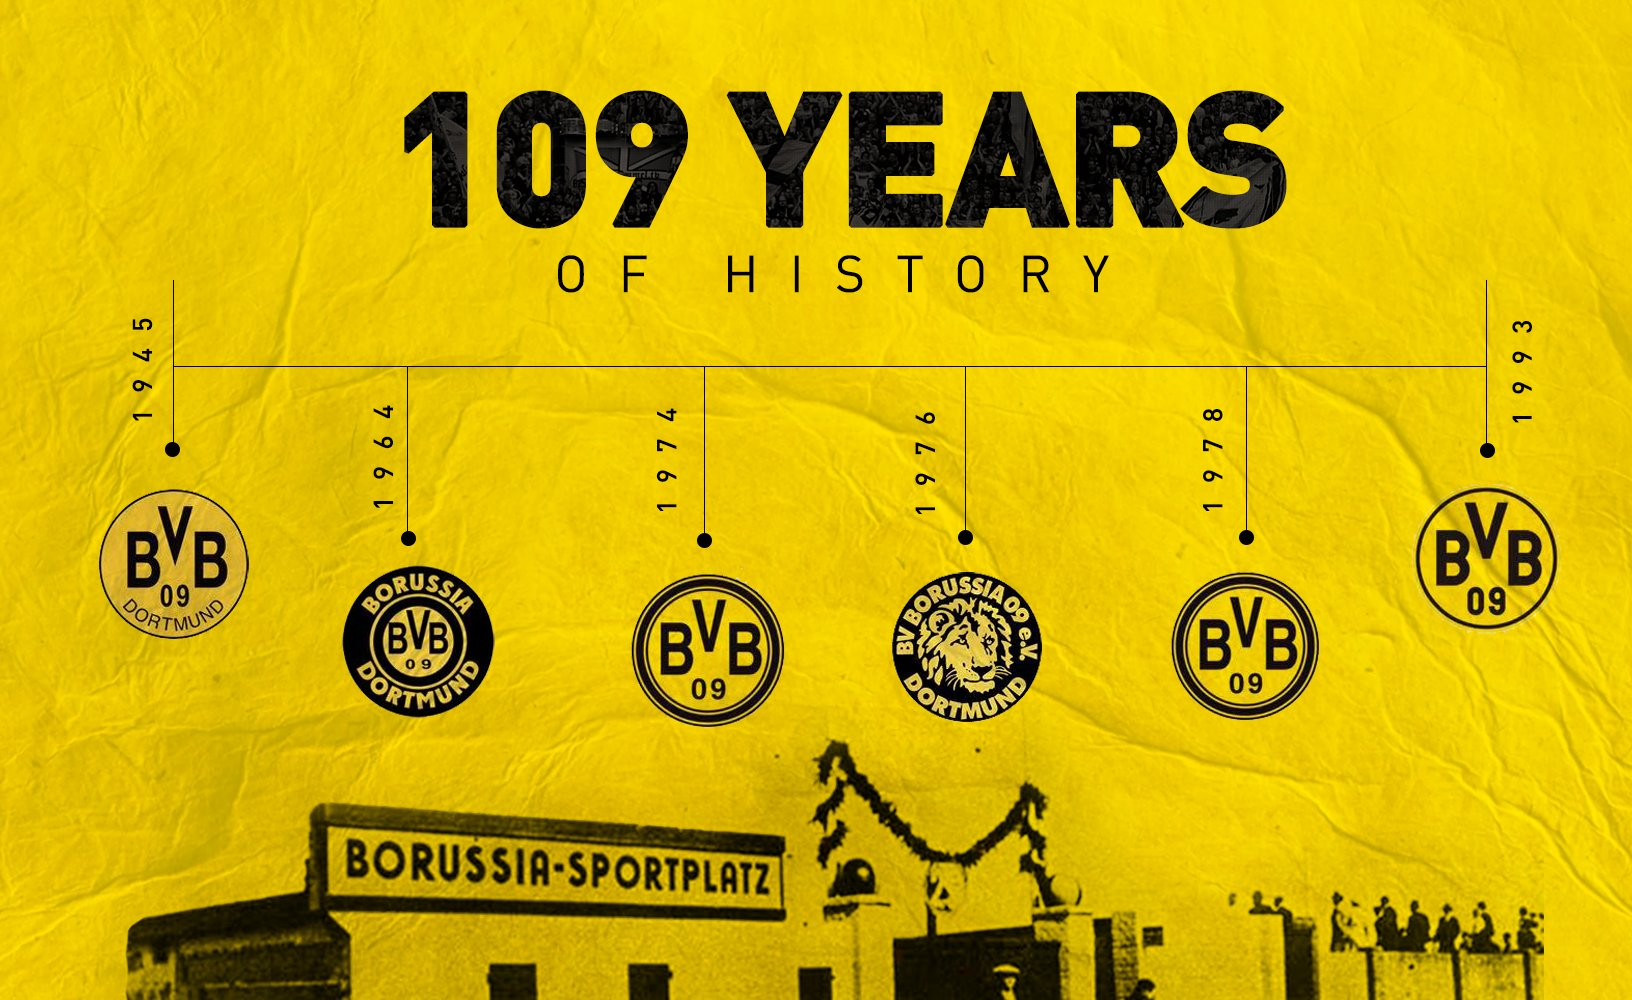 Borussia Dortmund On Twitter Our Logo Has Changed Over The Years But Our Passion Has Always Remained